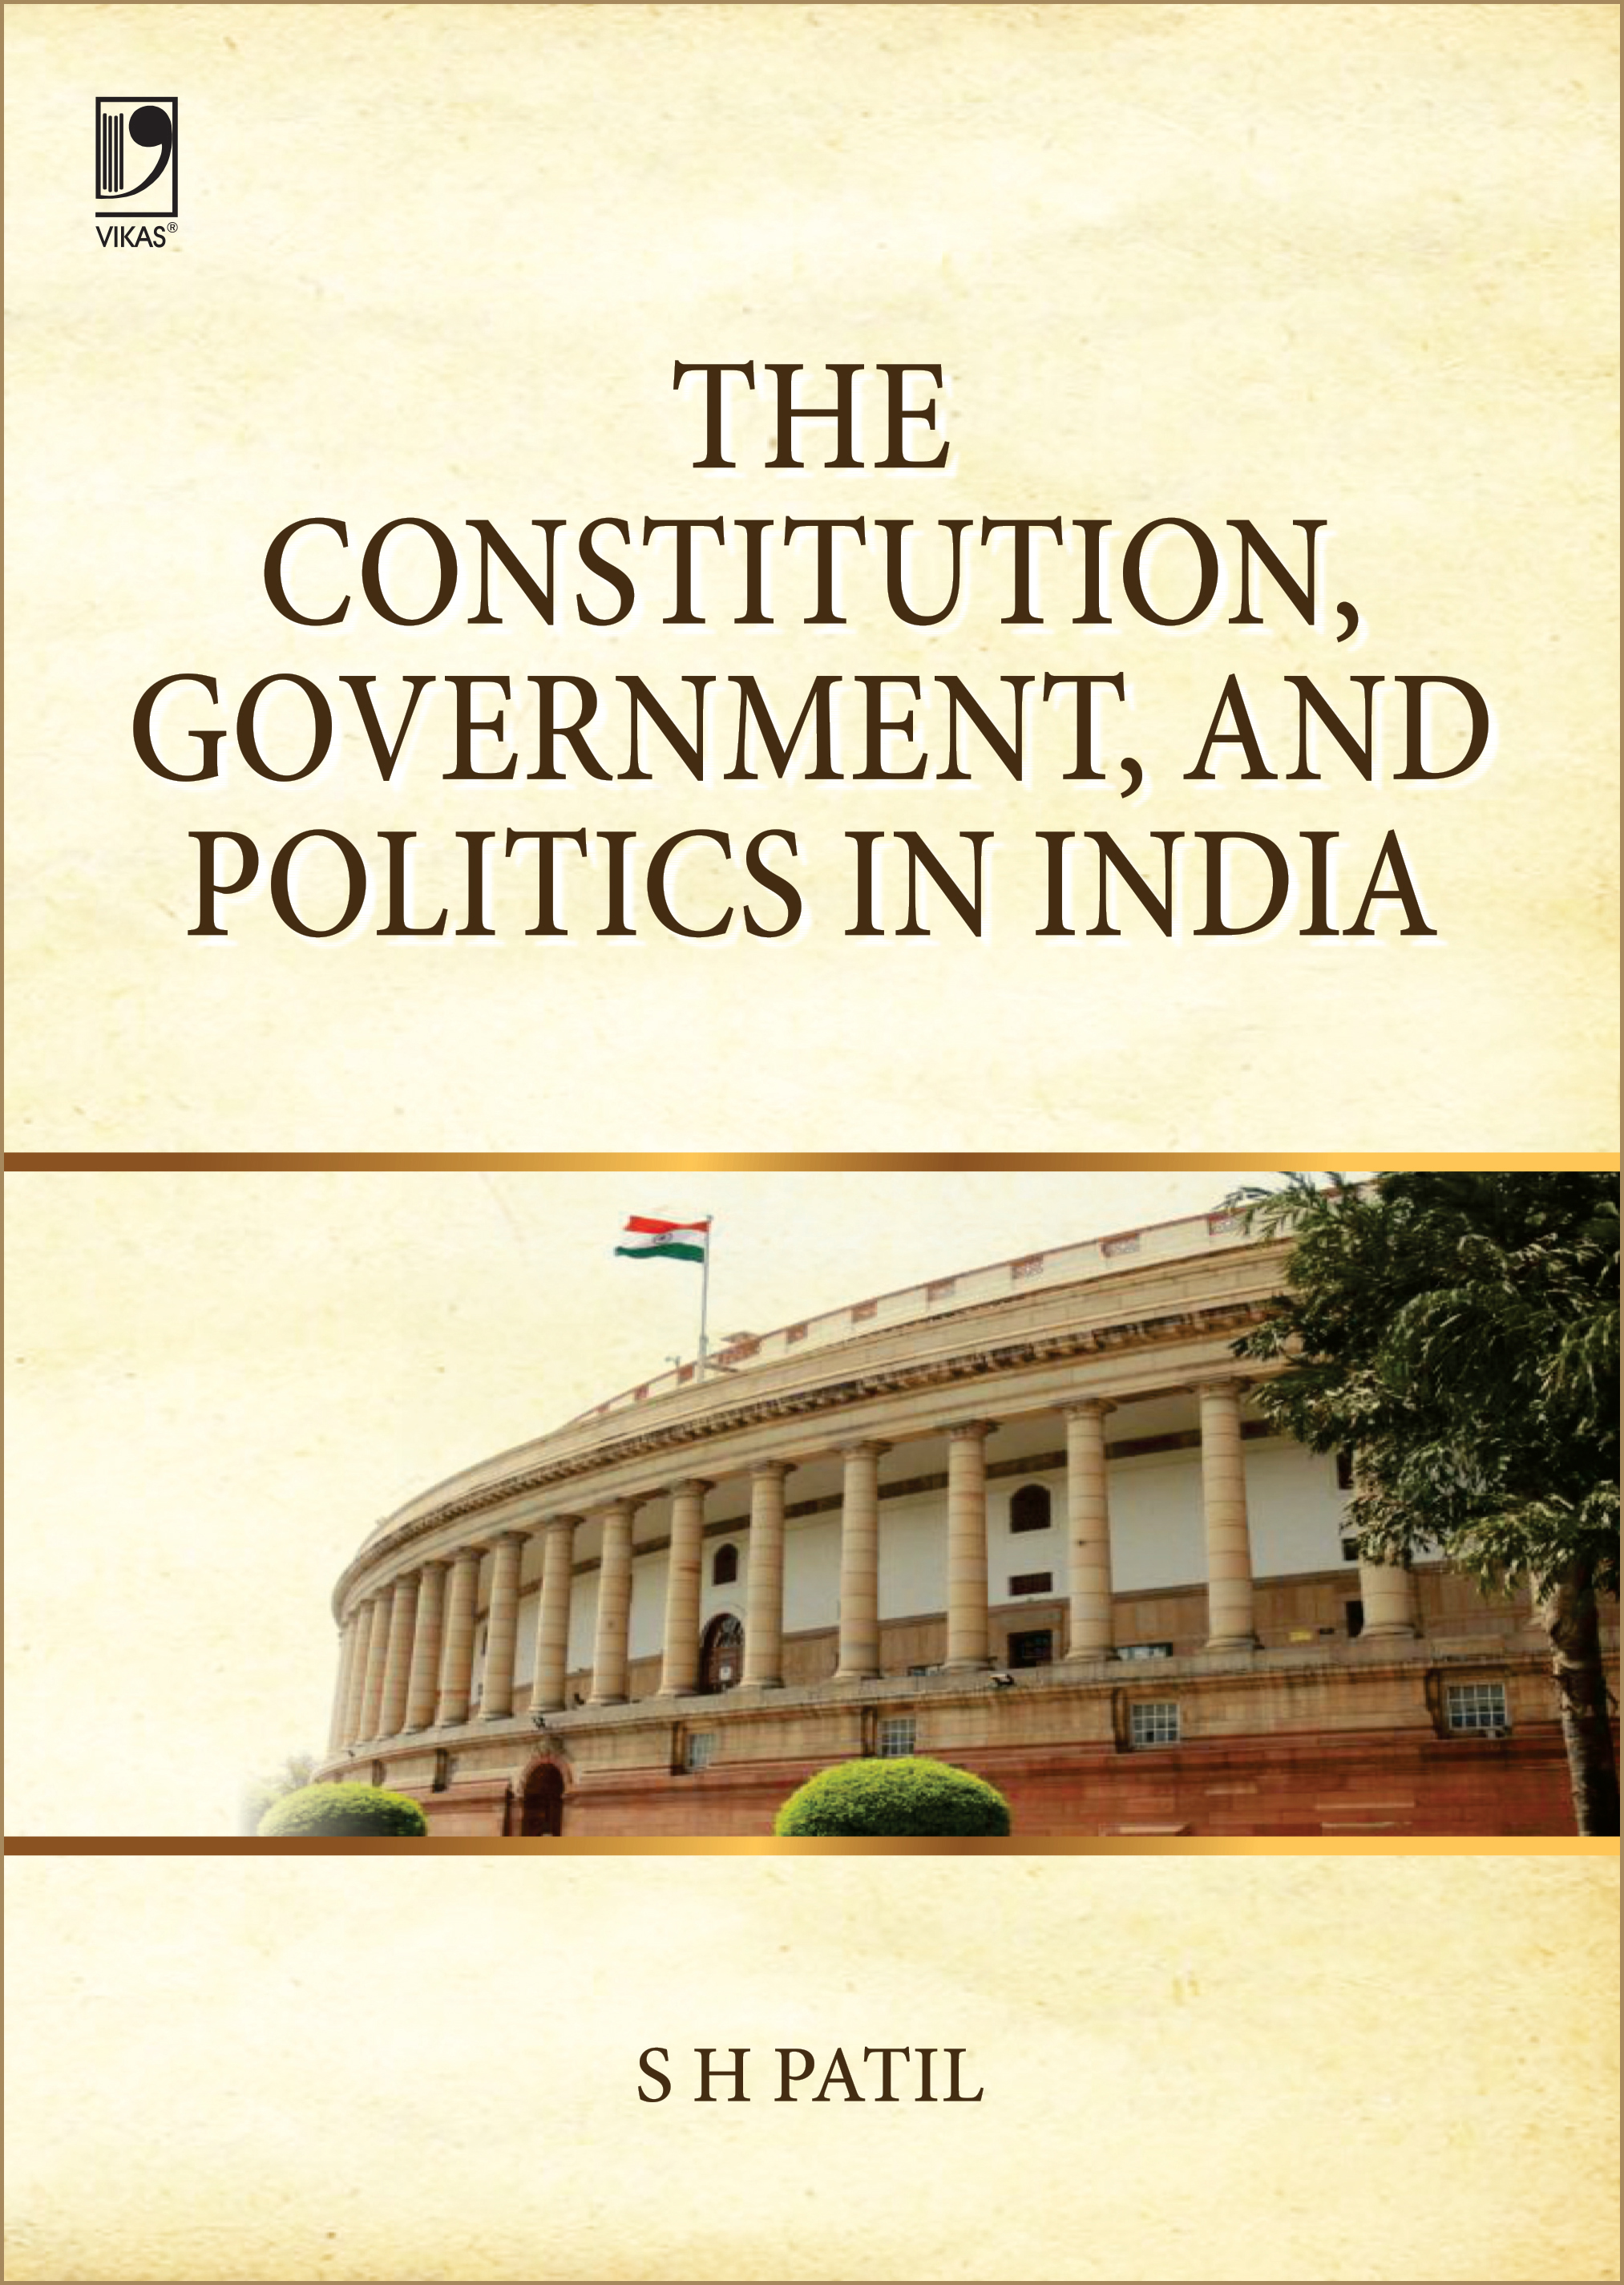 THE CONSTITUTION, GOVERNMENT AND POLITICS IN INDIA by  S.H. Patil